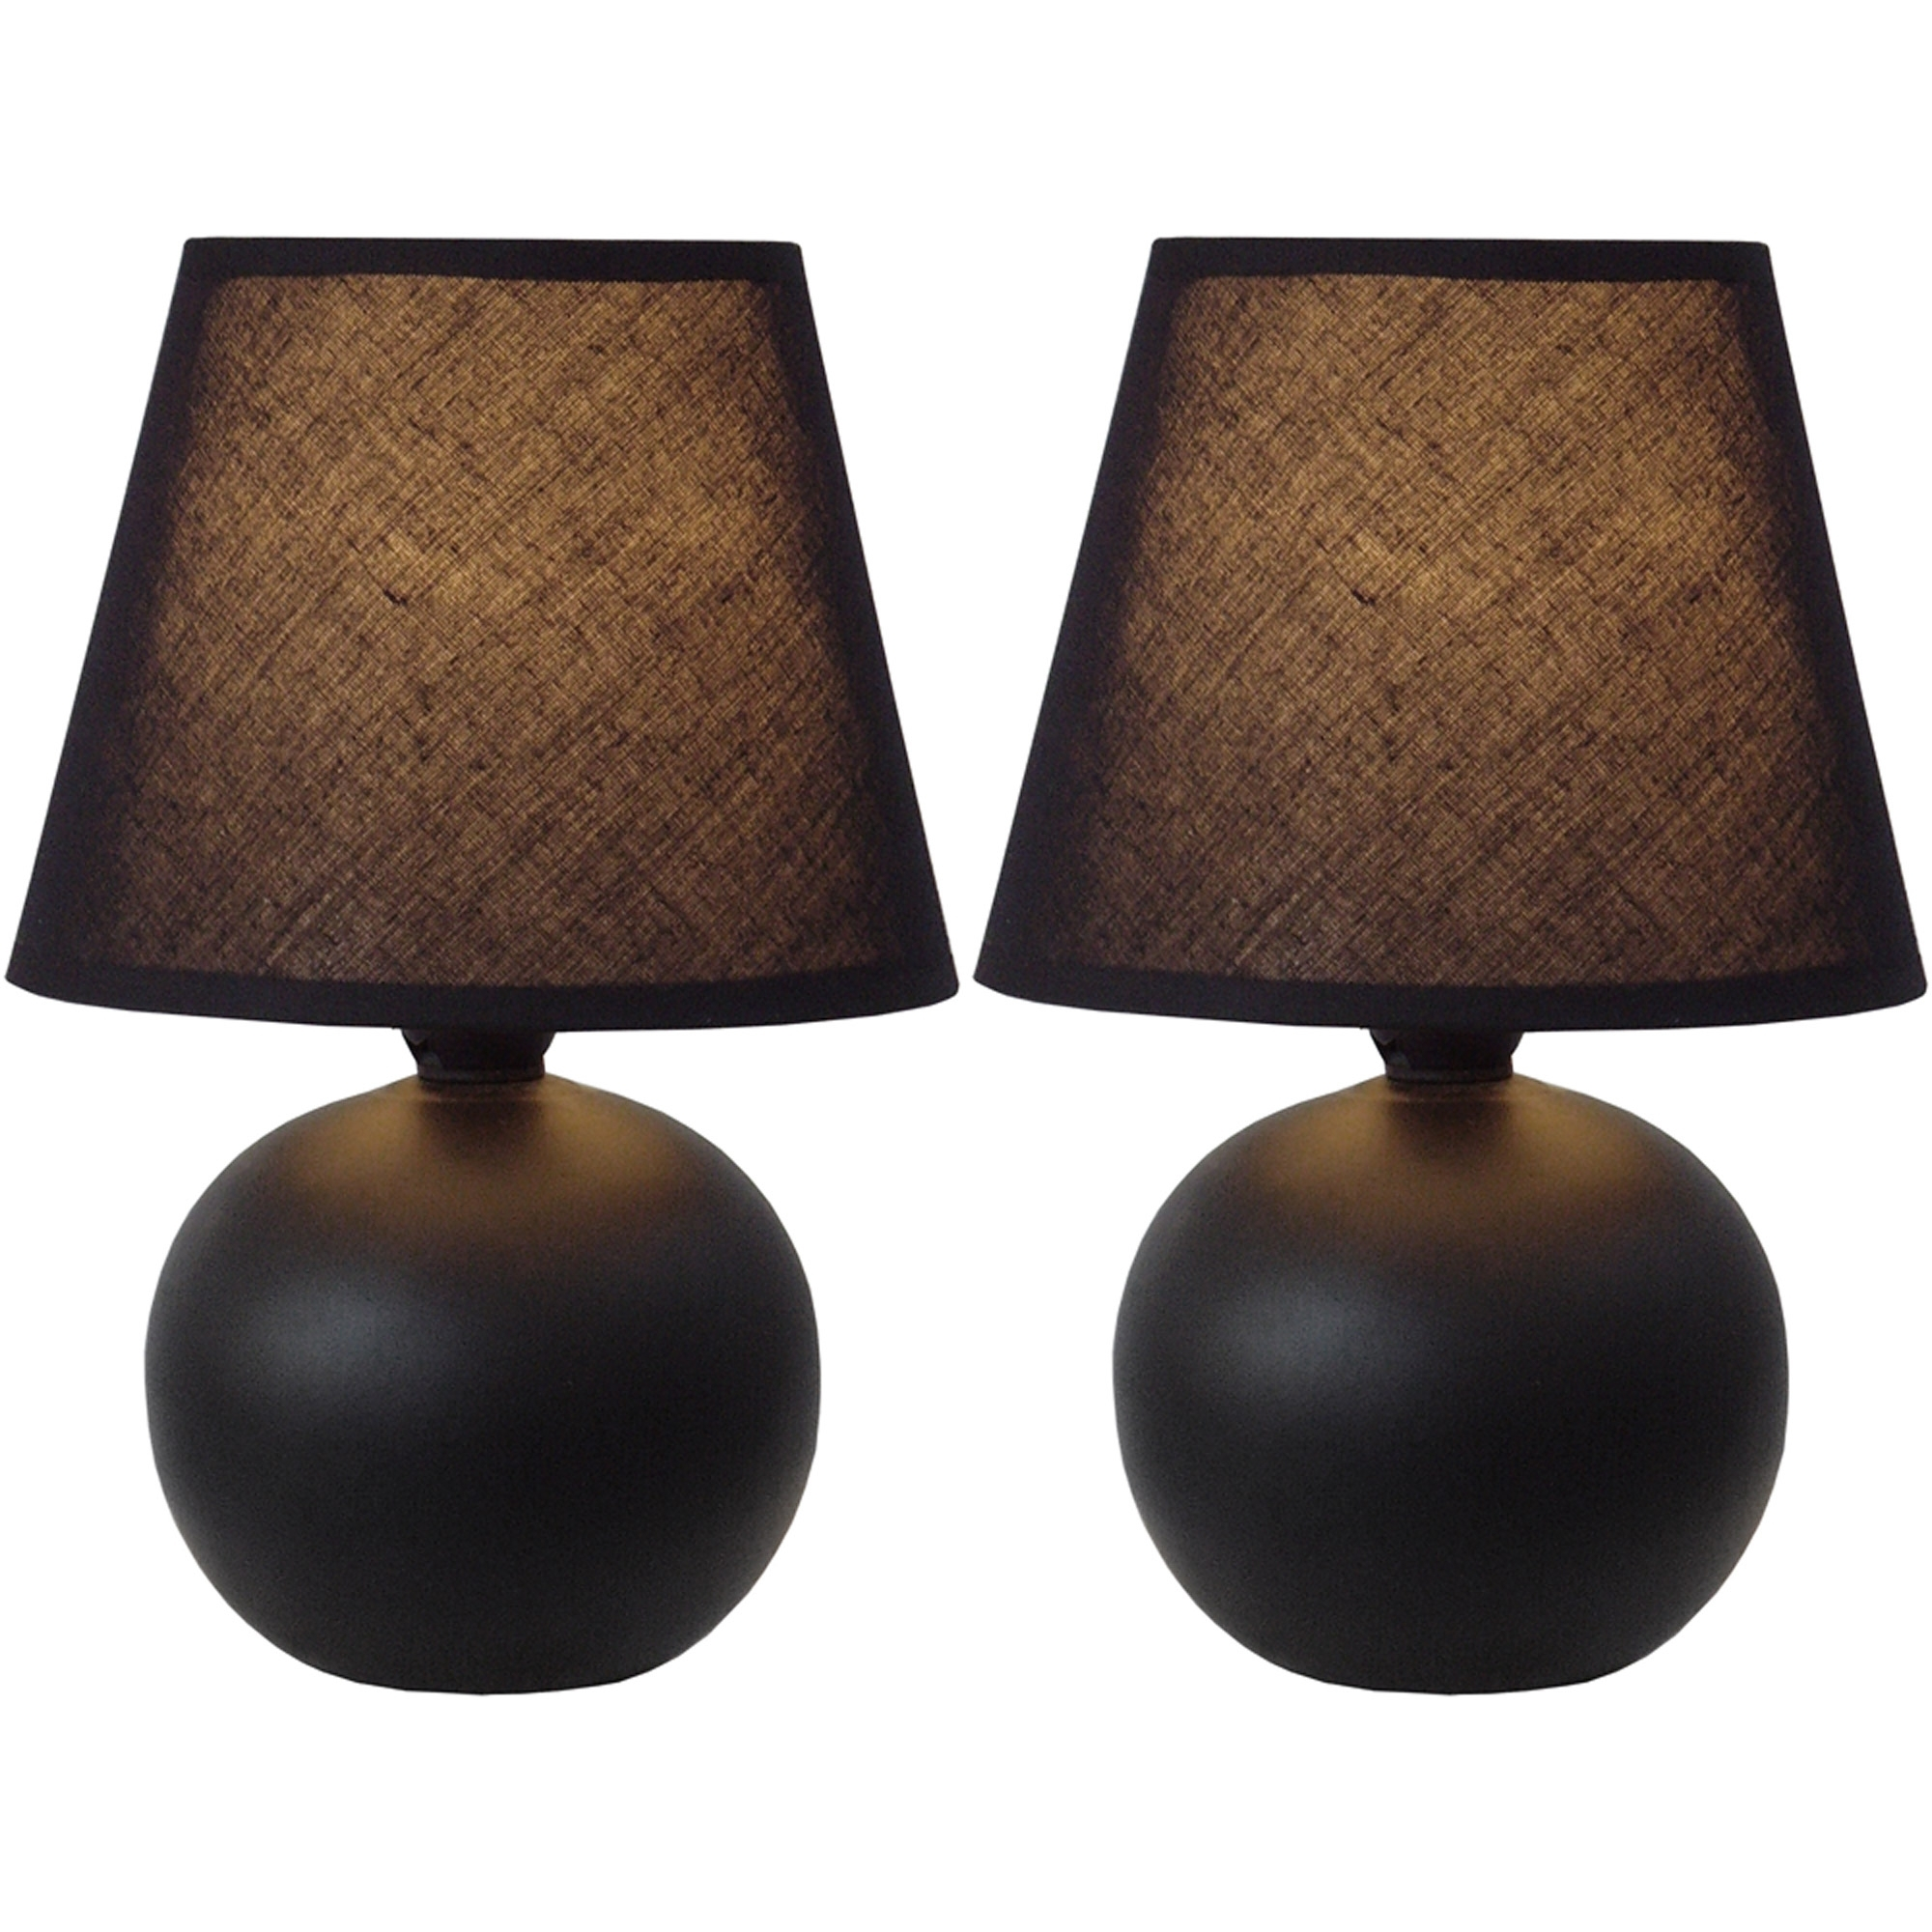 Signature Designashley L440234 Olivia Table Lamp – Set Of 2 Intended For 2018 Living Room Table Lamps Sets (View 17 of 20)